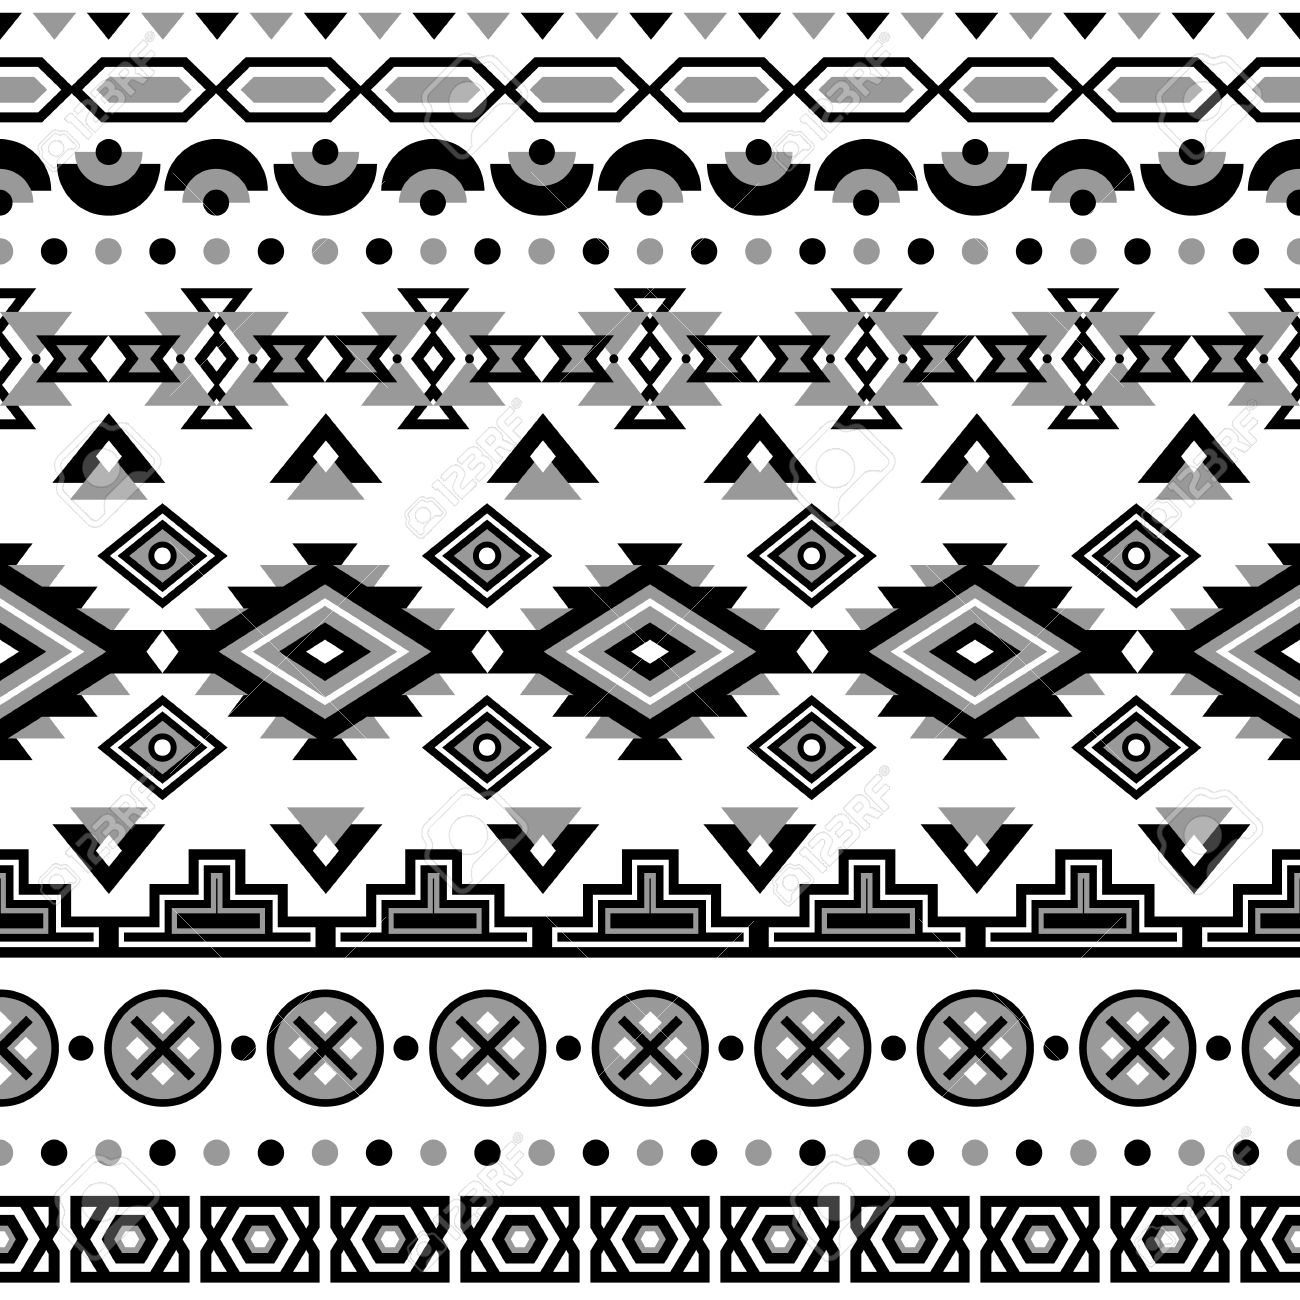 Aztec Black White Background Tribal Ethnic Navajo Print Modern